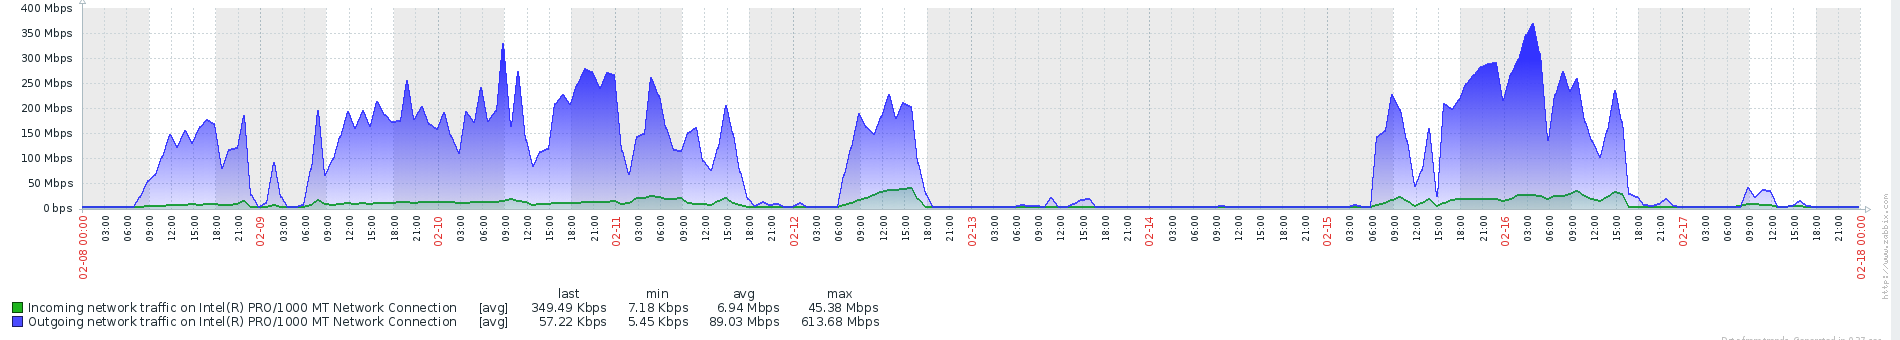 Incoming and outgoing traffic for several days on the server before usage of sp_executesql